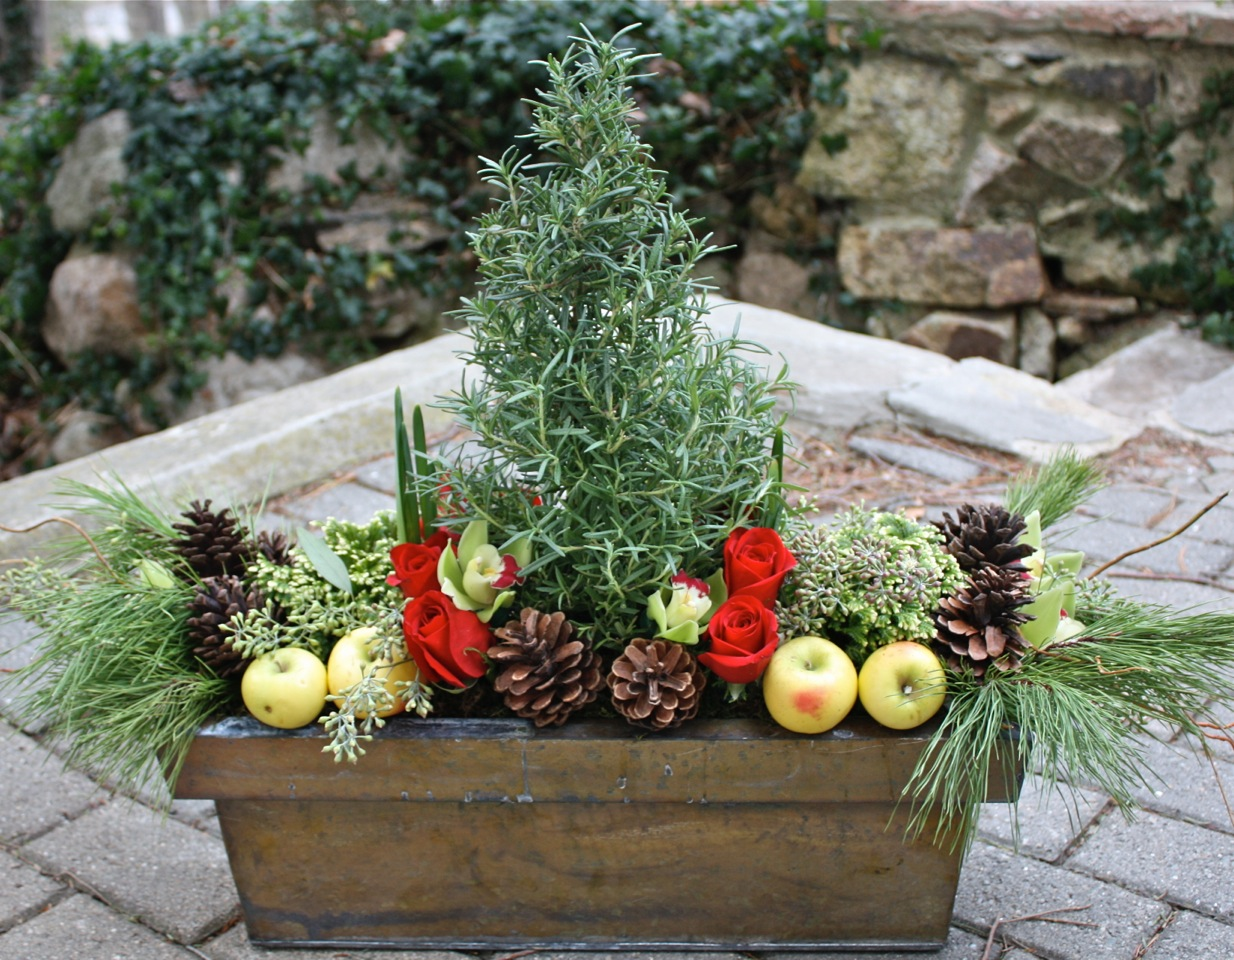 Holiday tablescapes home design seminar hamilton wenham ma patch - Interesting tables capes for christmas providing cozy gathering space ...